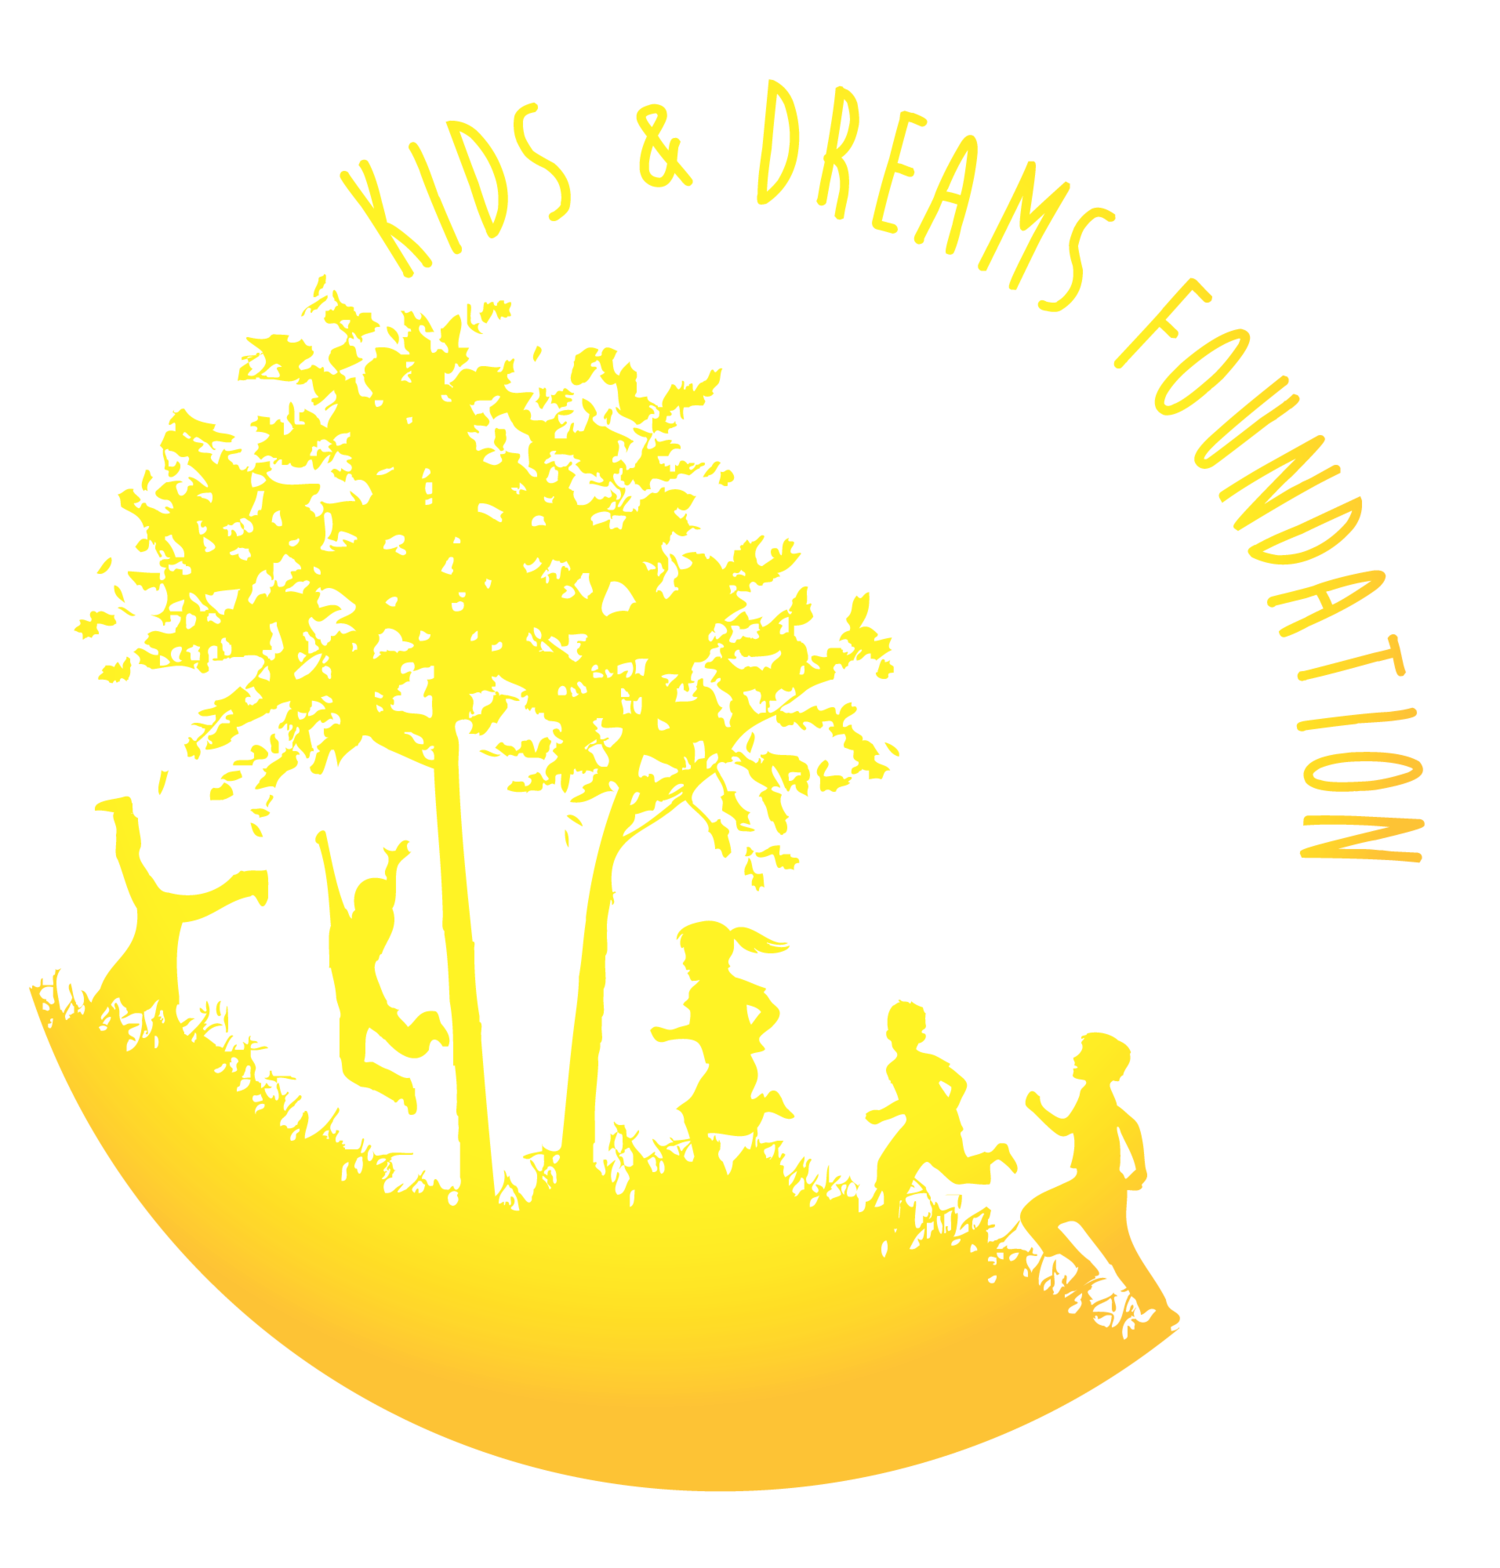 KIDS & DREAMS FOUNDATION